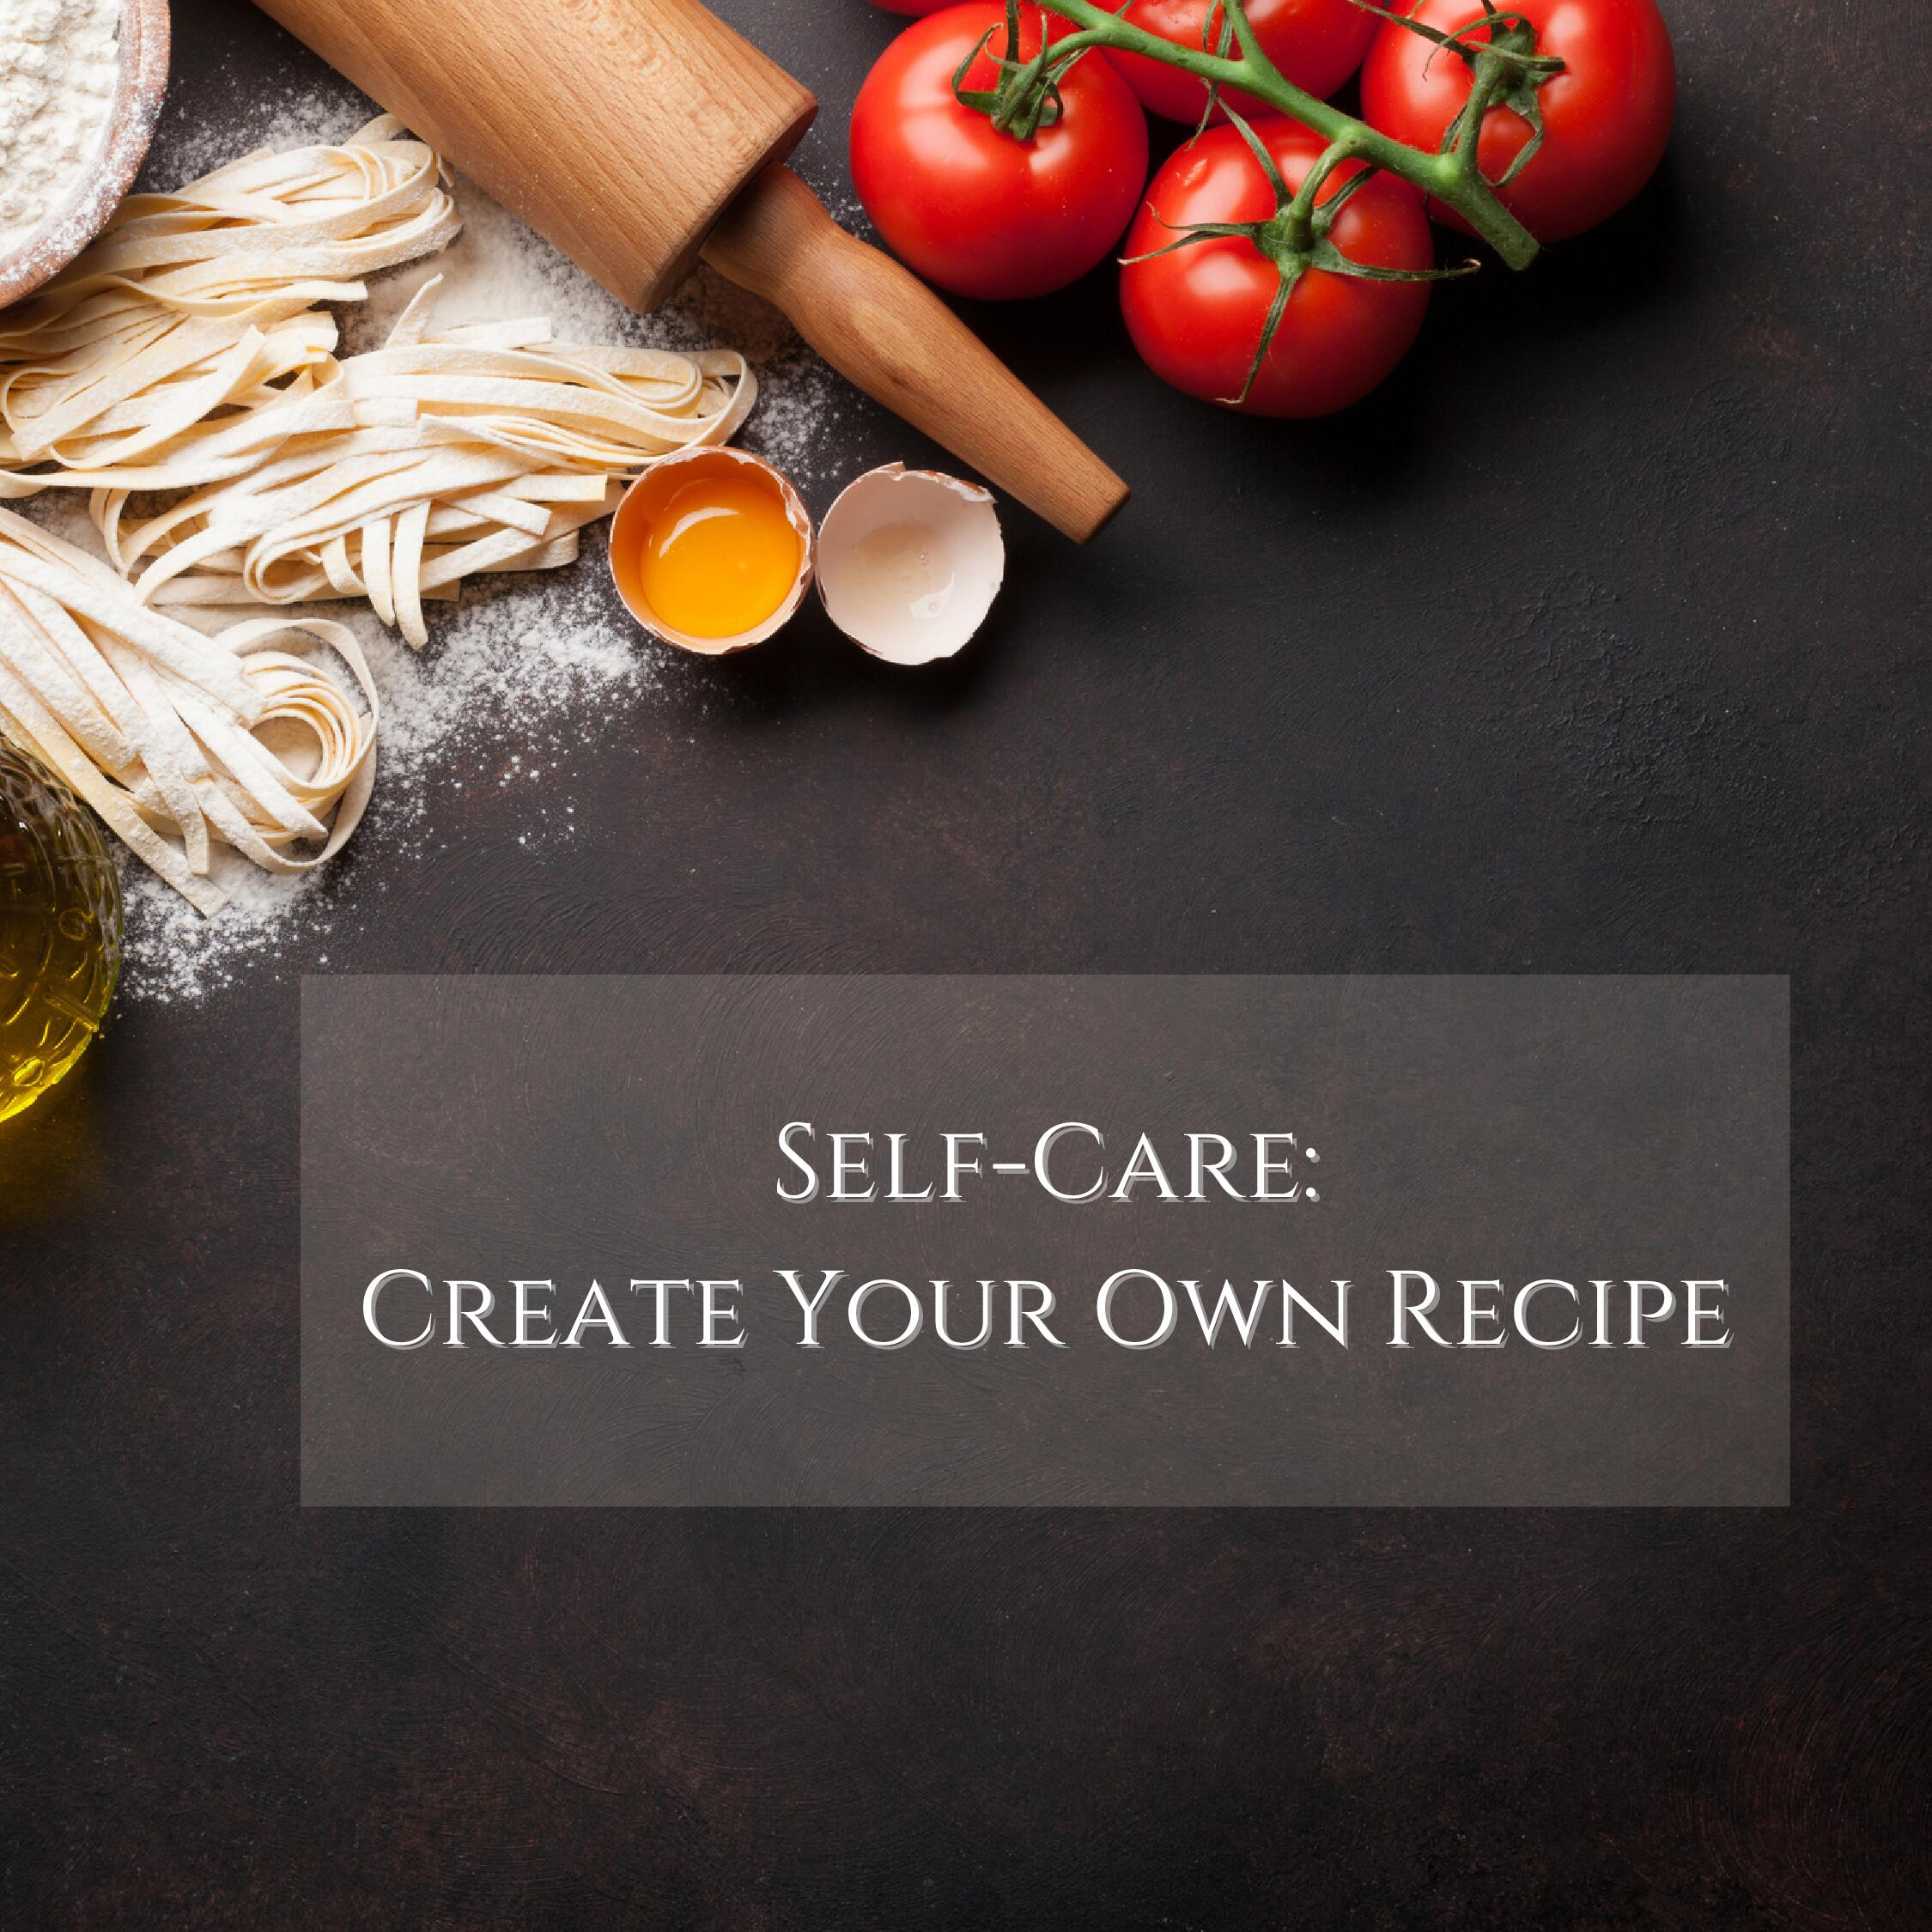 Self-Care: Create Your Own Recipe